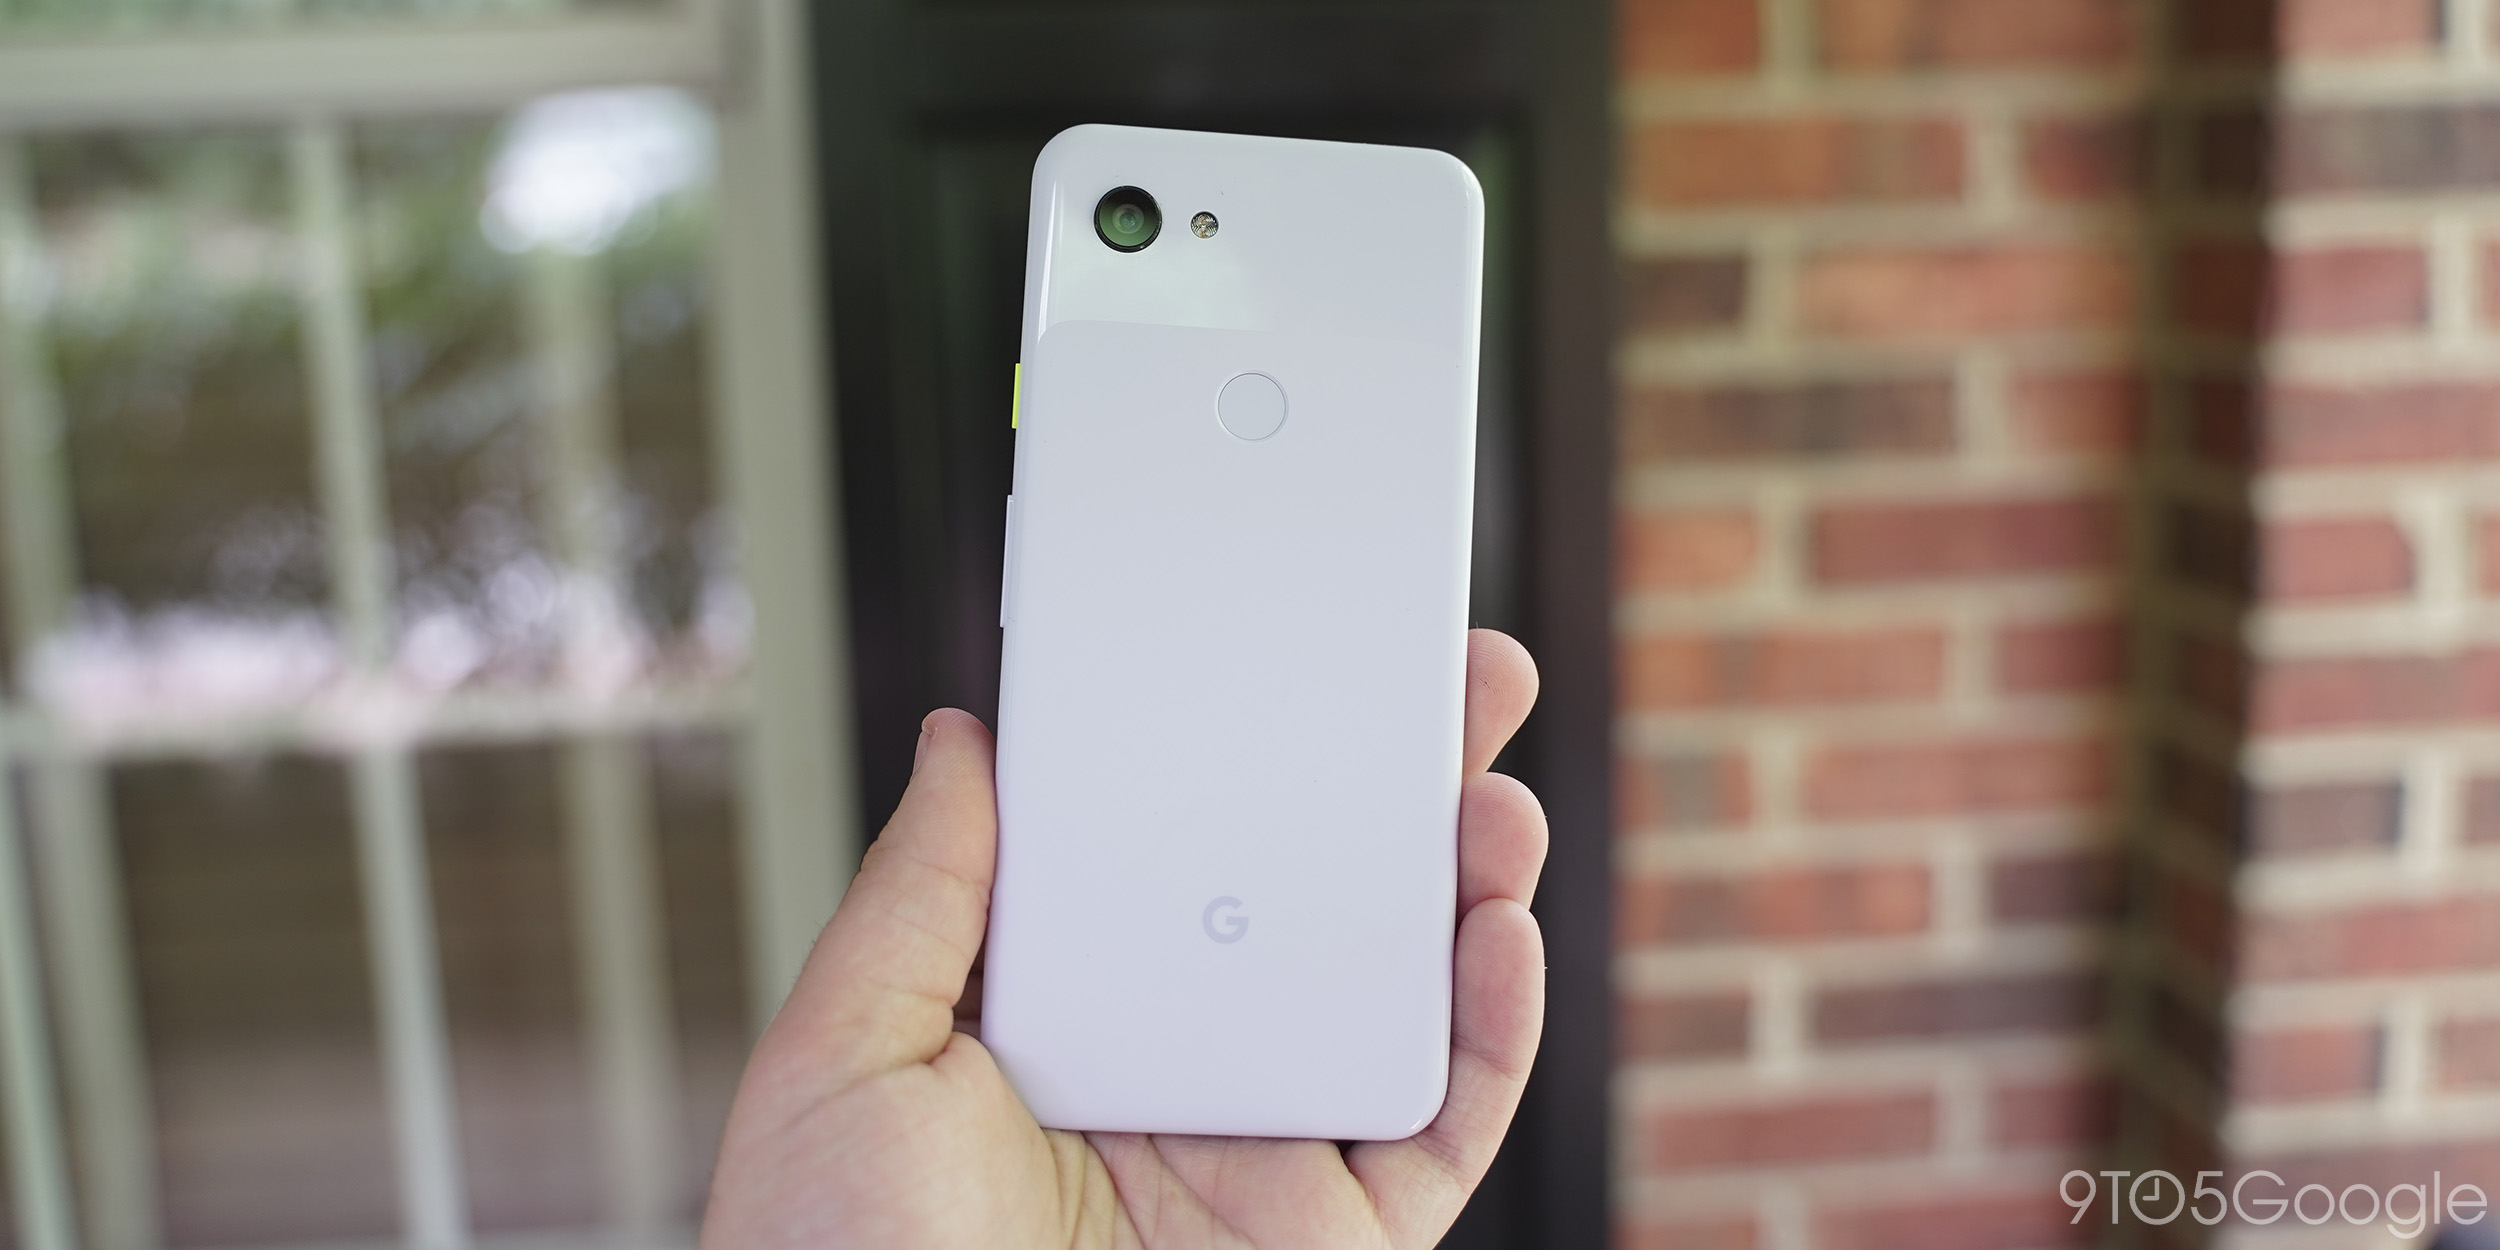 Pixel 3a helped Google increase Pixel sales by over 2x ...